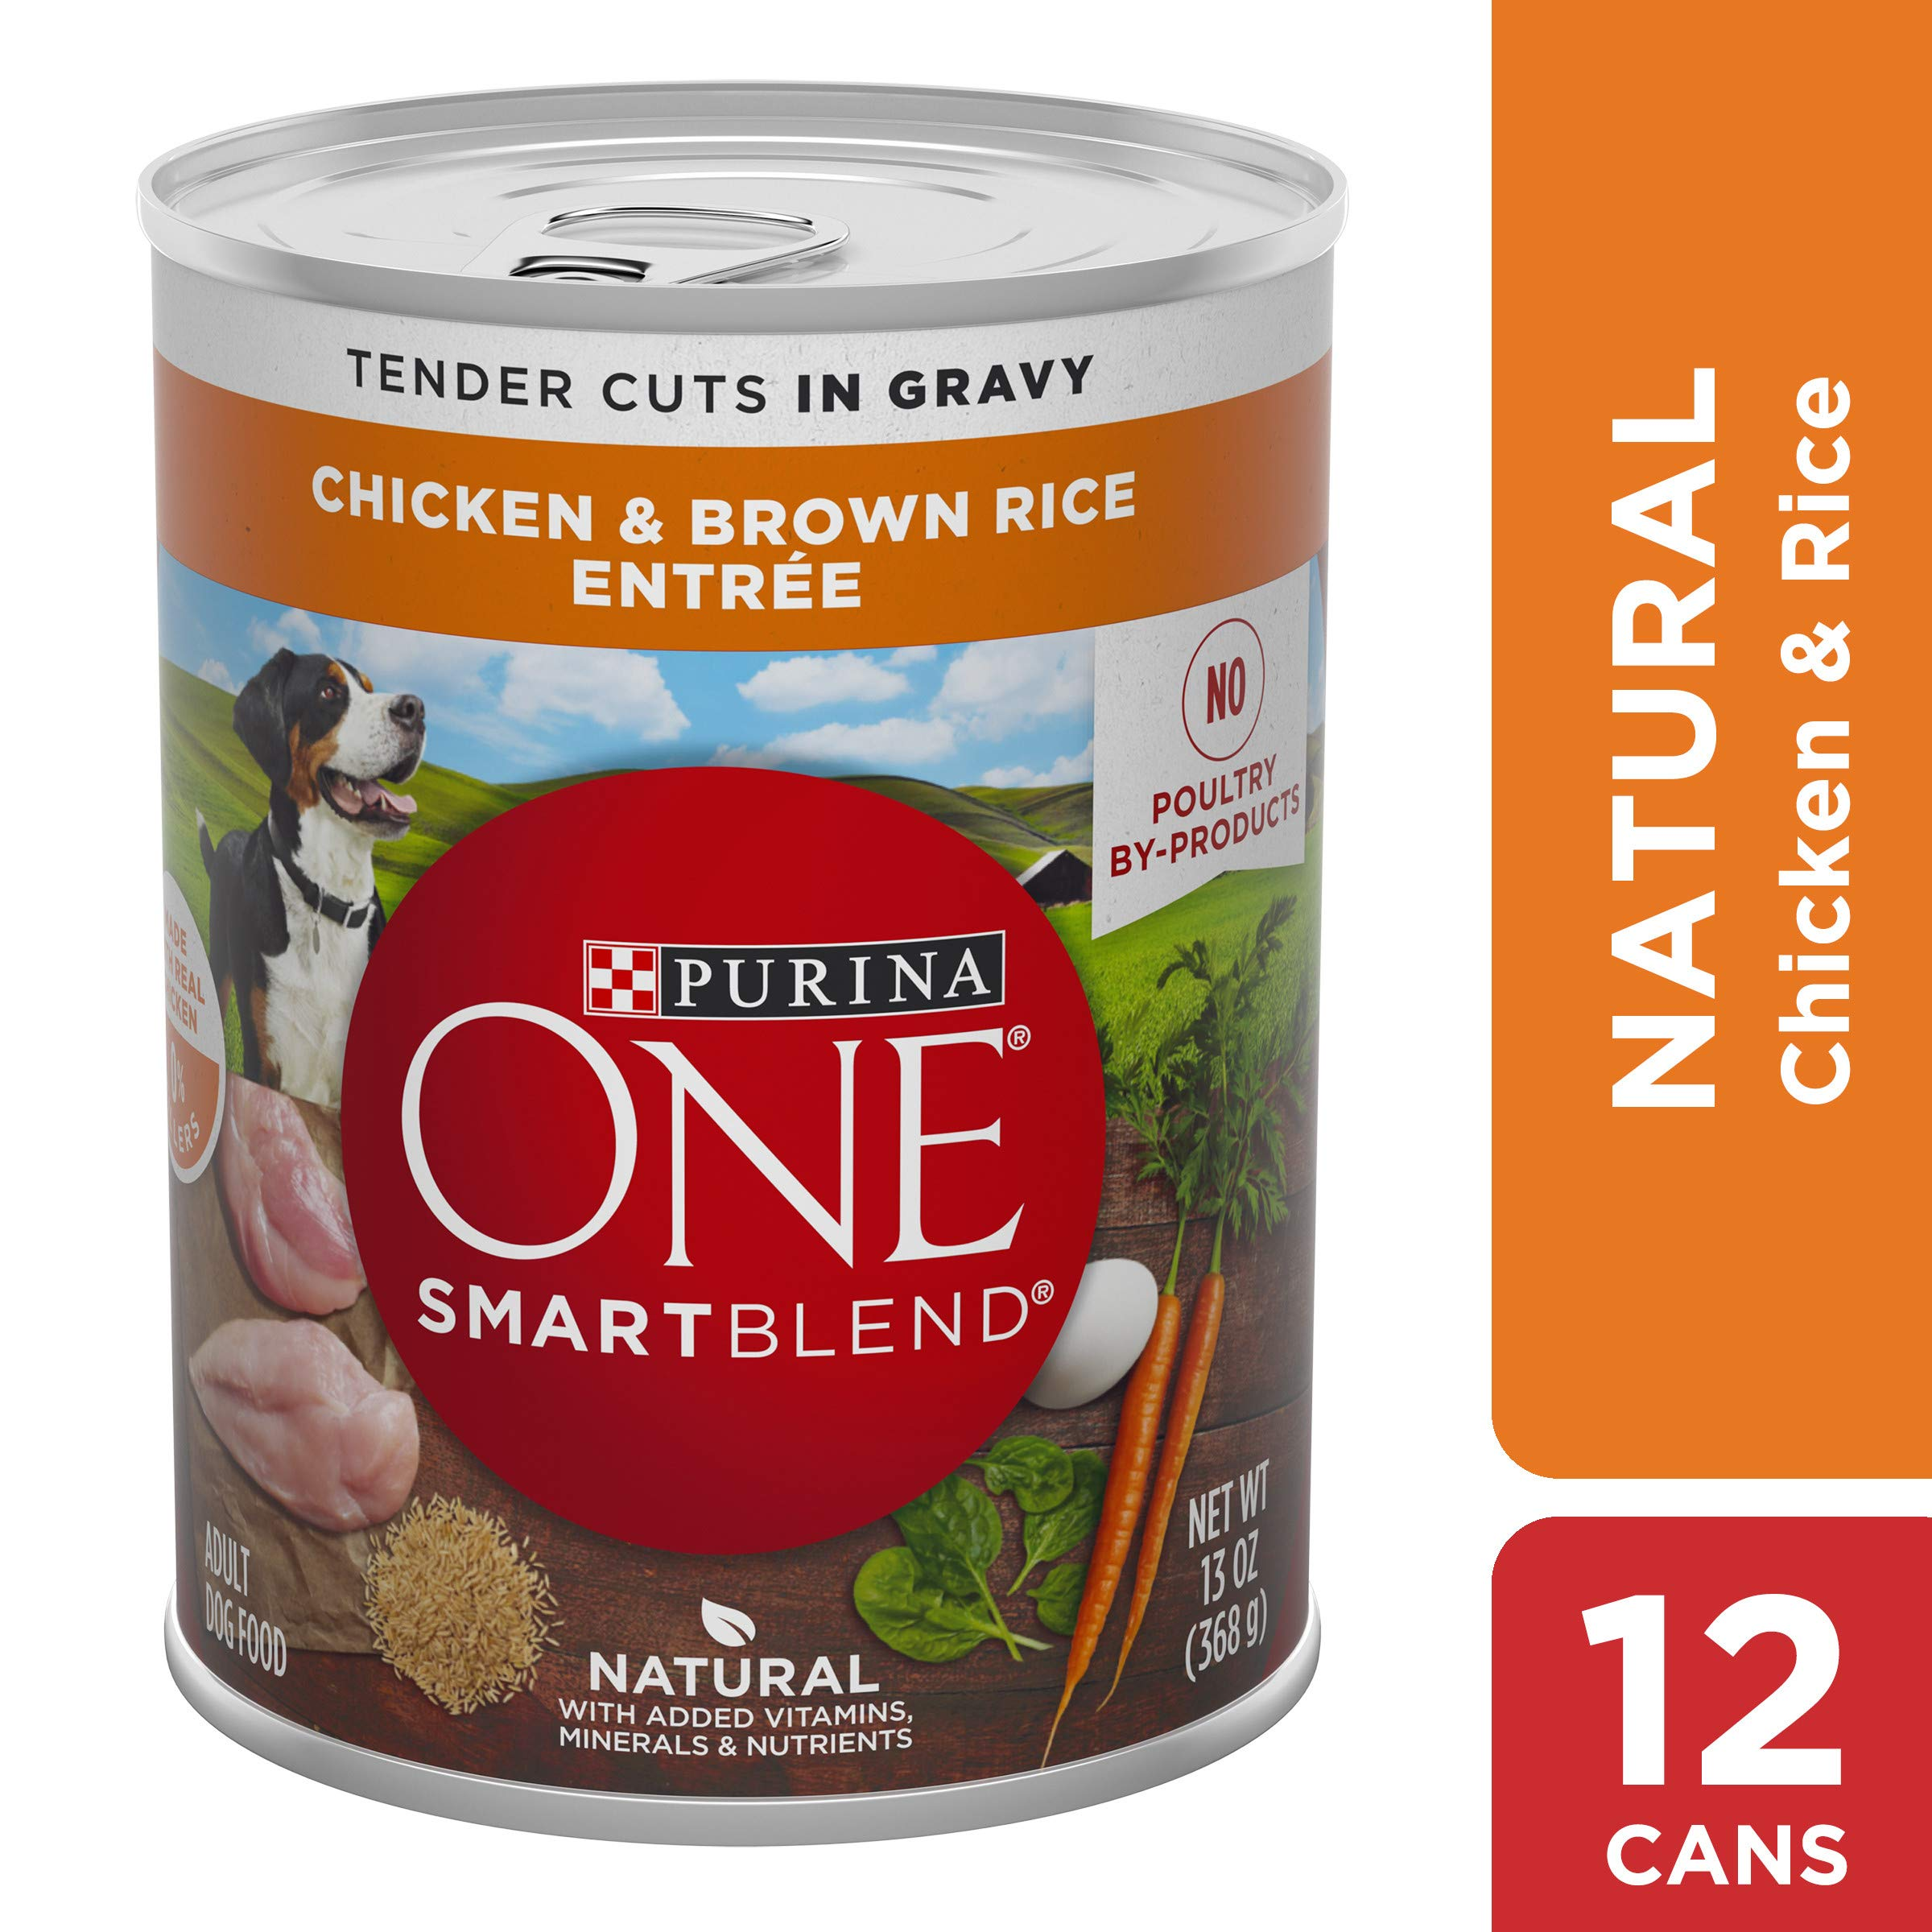 Purina ONE Natural, High Protein Gravy Wet Dog Food, SmartBlend Tender Cuts Chicken & Brown Rice - (12) 13 oz. Cans by Purina ONE